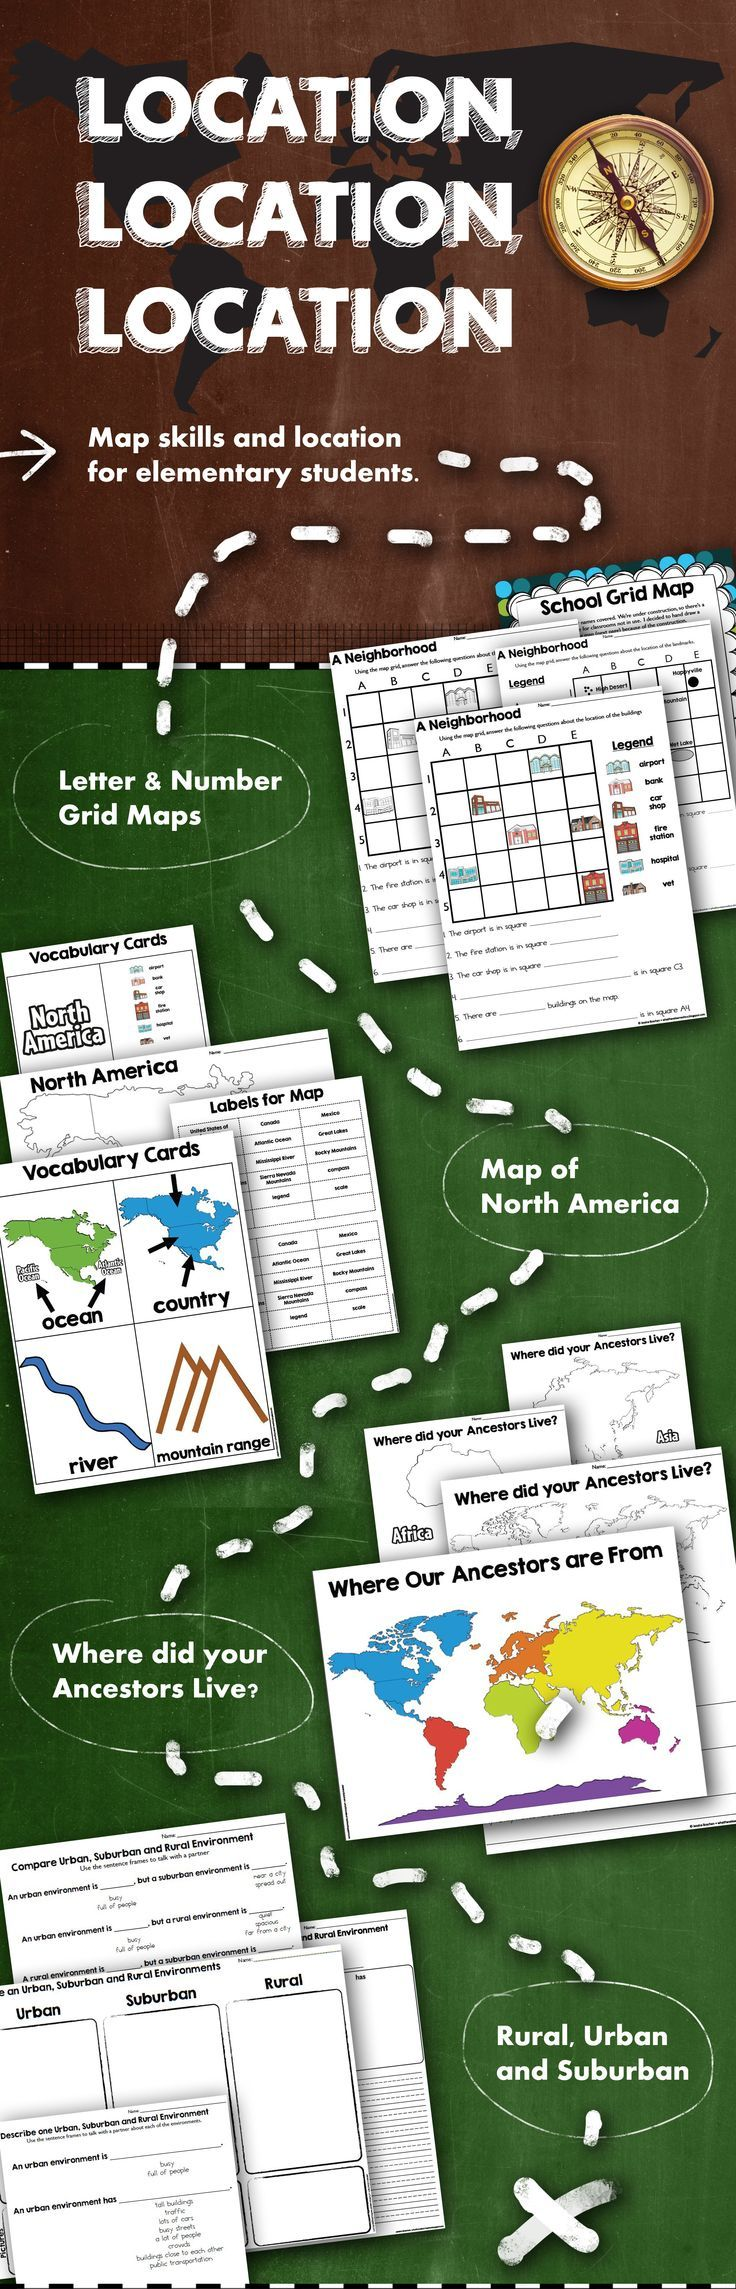 Map Skills   Location  Social Studies Unit    Map skills  Elementary     Learn map skills in elementary school      Letter   Number Grid Maps  for the